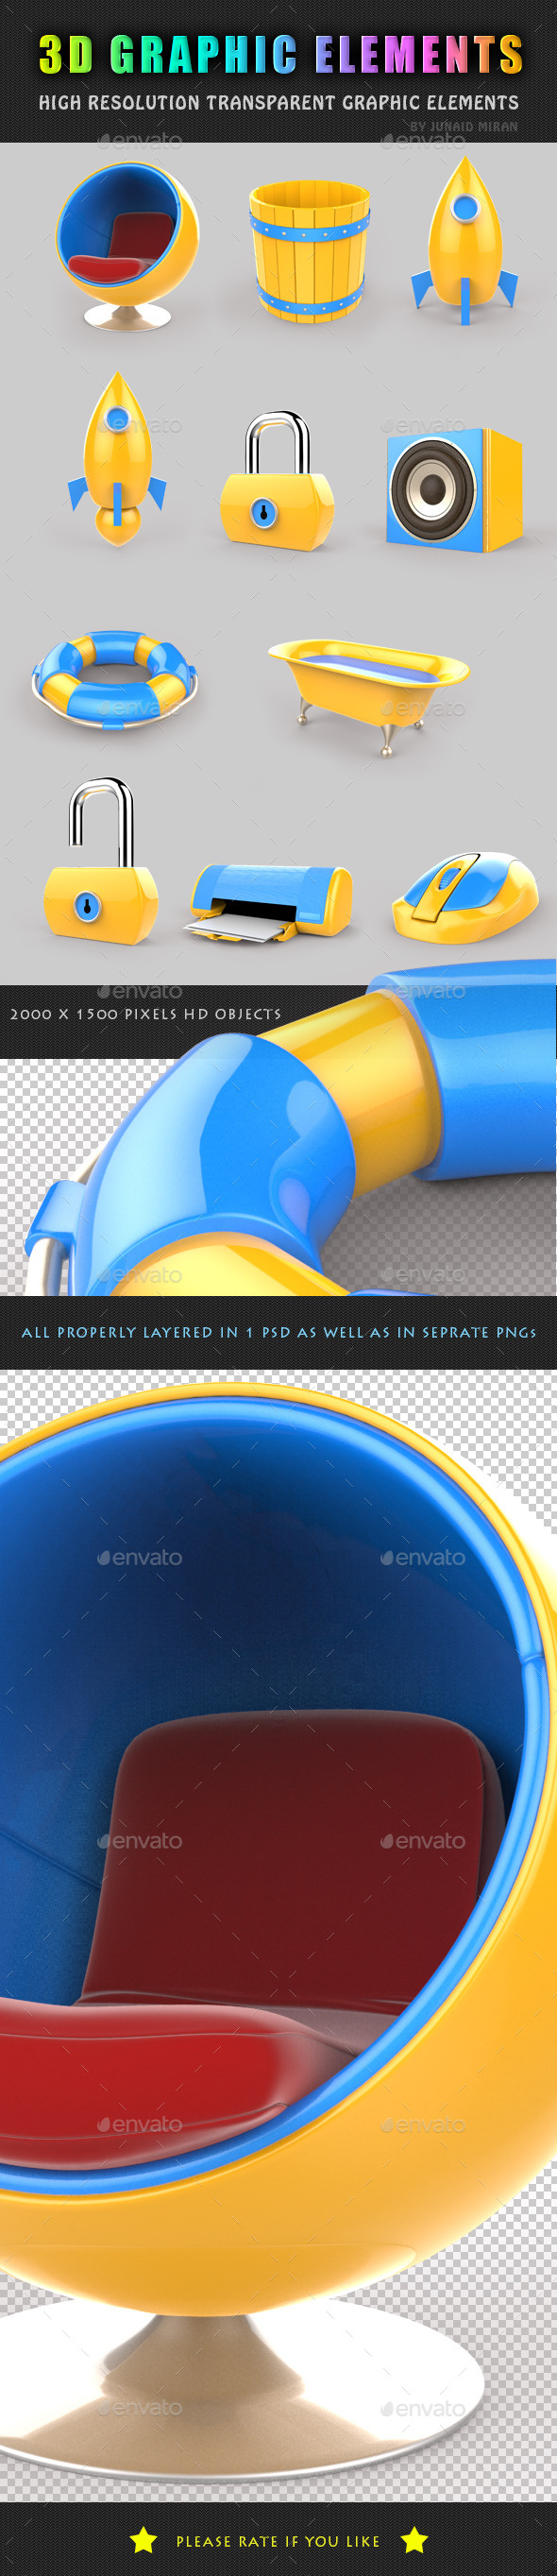 GraphicRiver 3D Graphic Elements 8872099